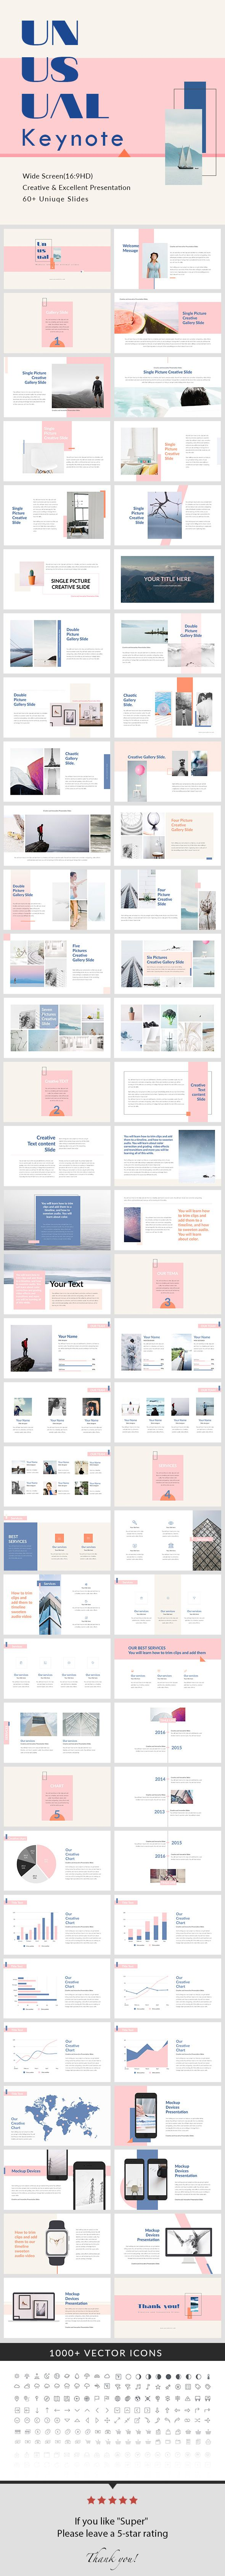 Unusual - Keynote Presentation Template